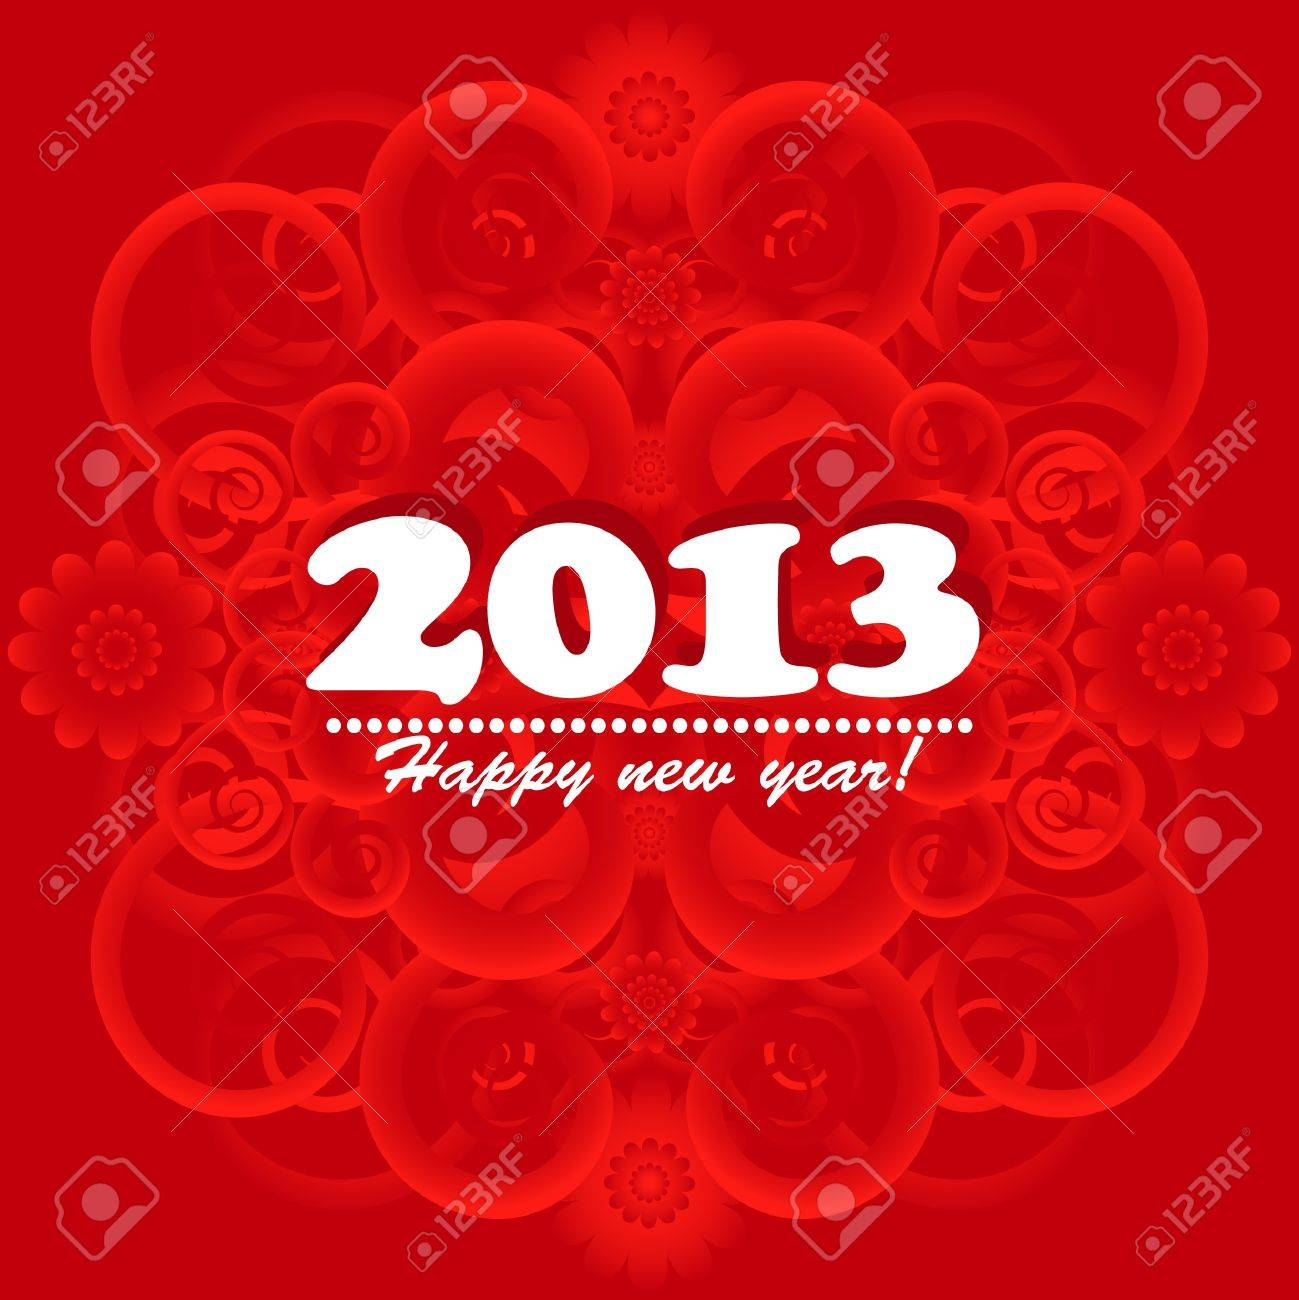 new year card 2013 Stock Vector - 15363496